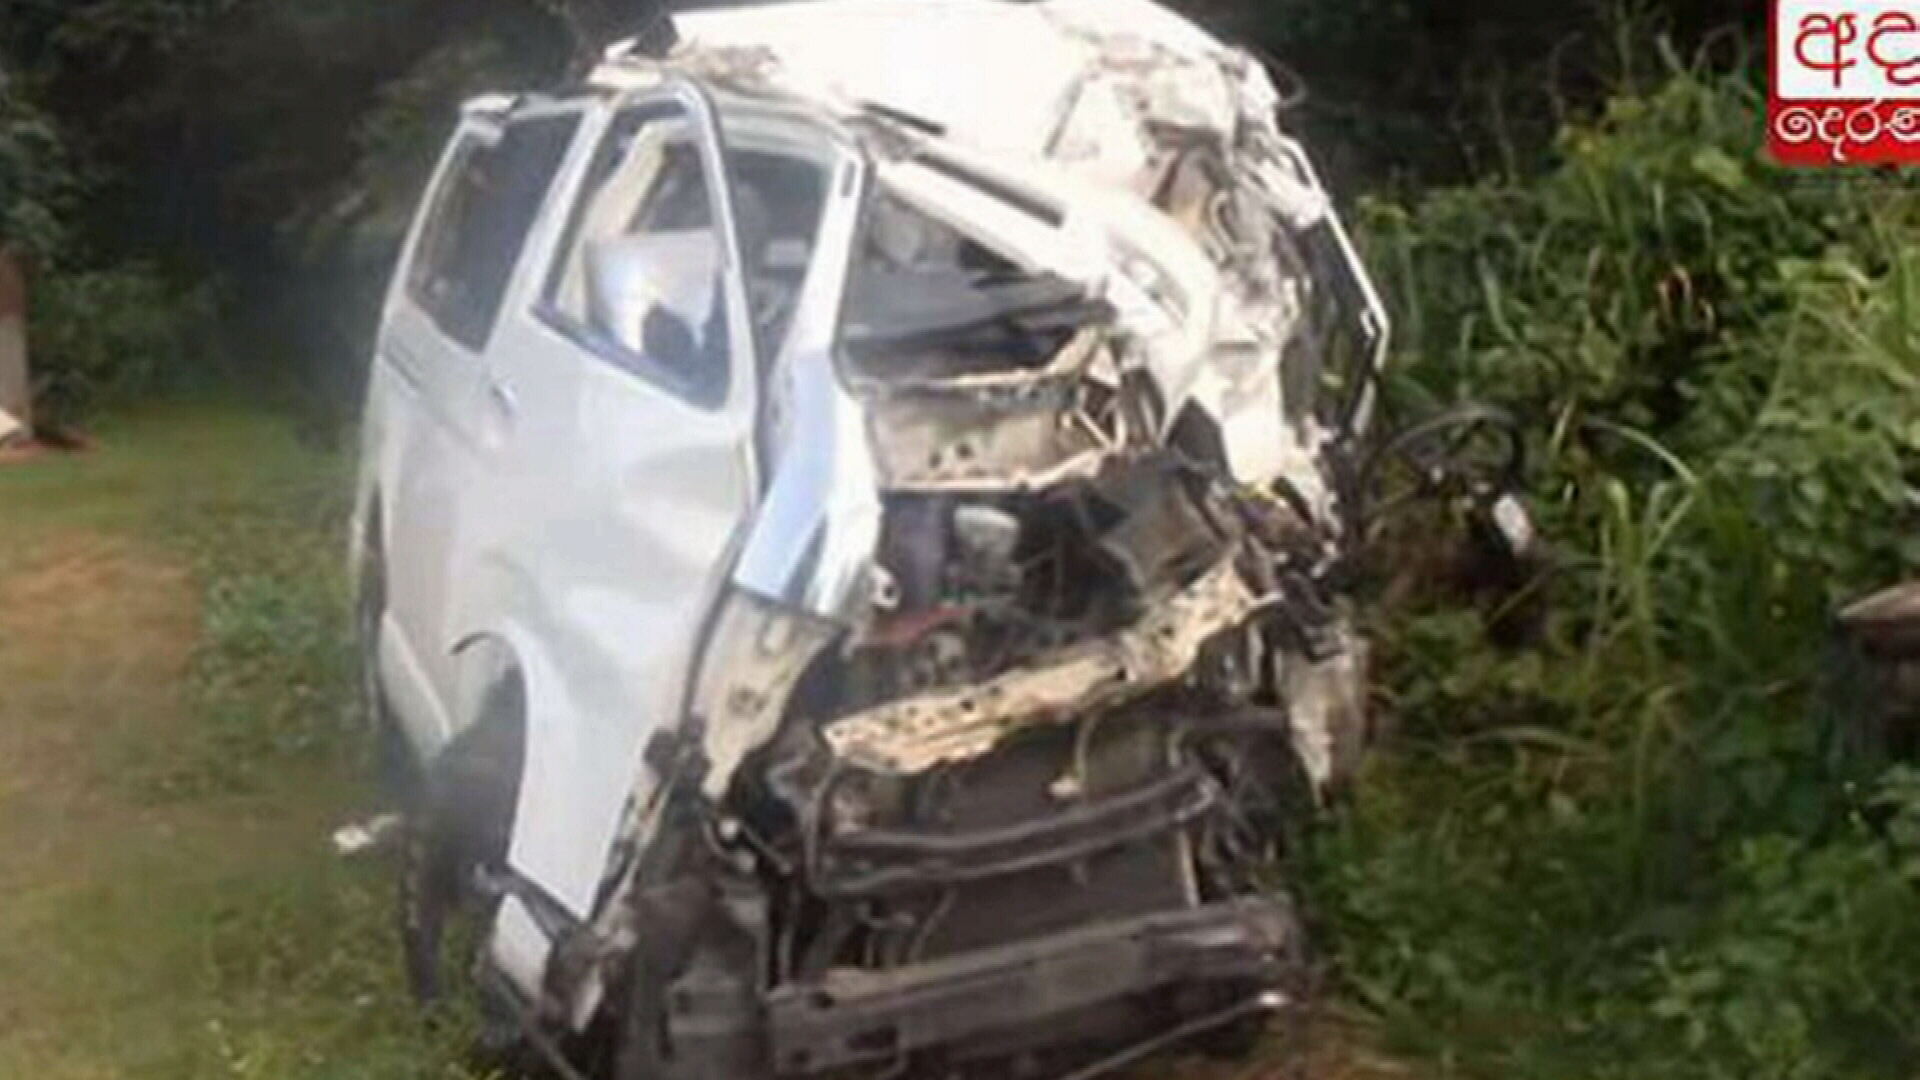 Australian woman and daughter killed in car crash in Sri Lanka